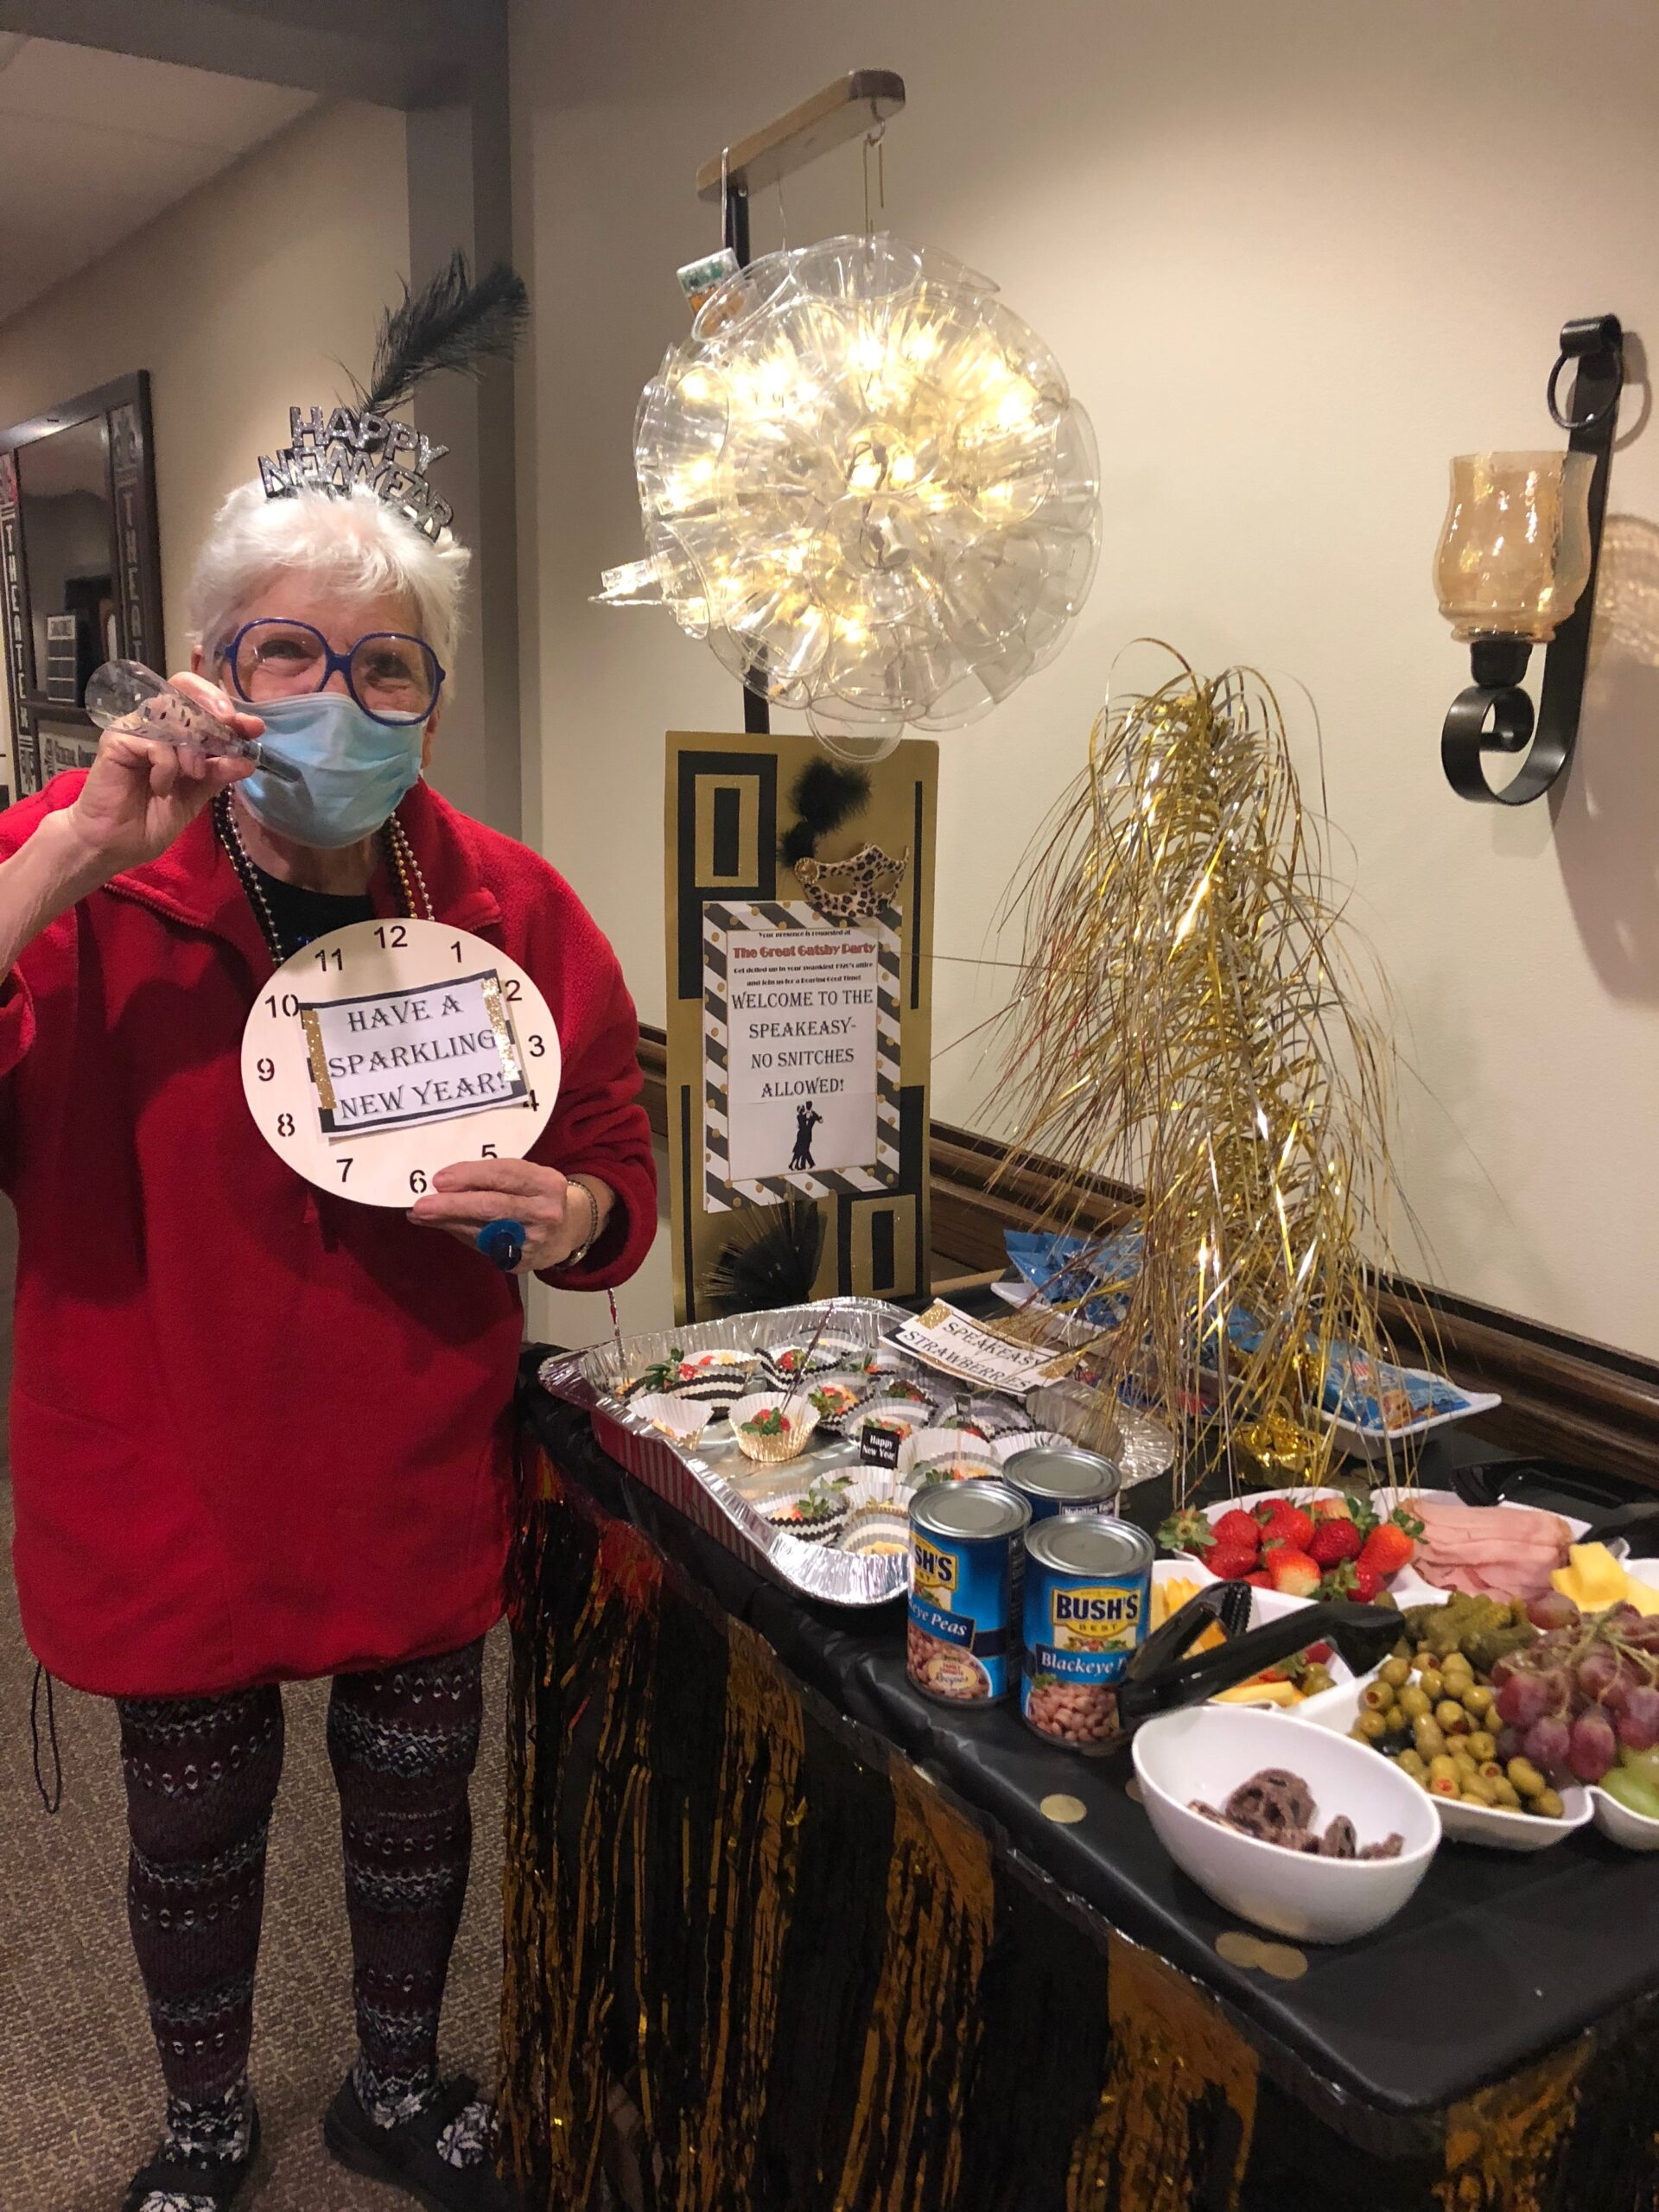 A Roaring Good Time New Years Eve Cart! On New Years Eve residents were greeting with a 1920s style Snack Cart with Champagne, Chocolate Covered Strawberries, Fortune Cookies, Midnight